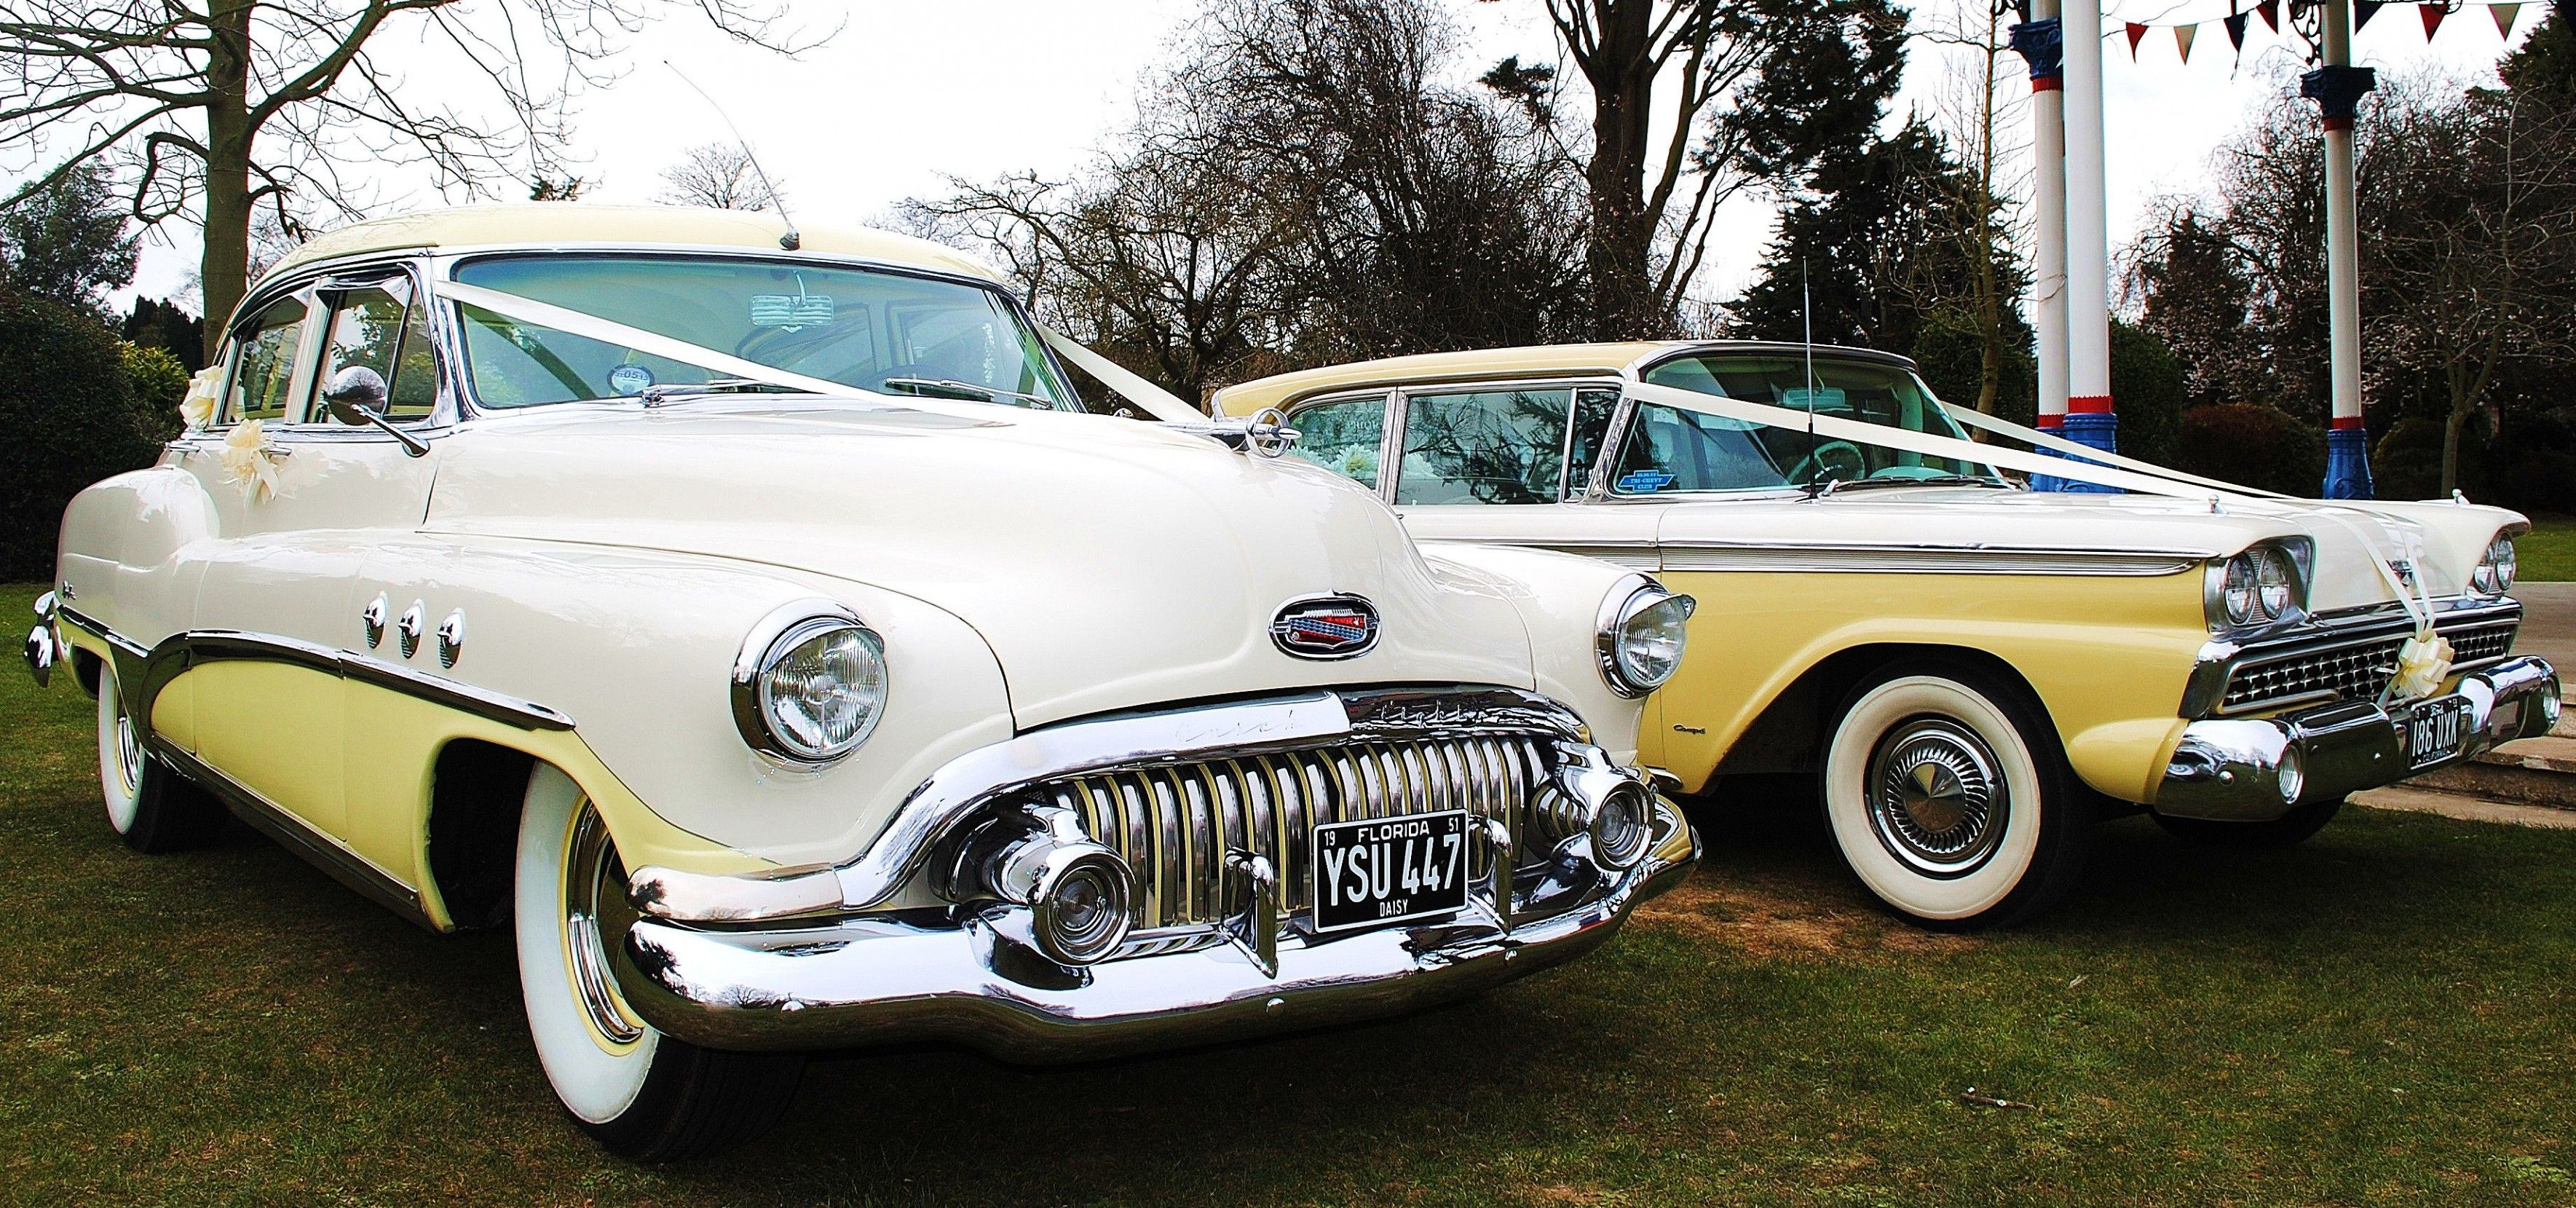 The Story Of American Wedding Cars Has Just Gone Viral